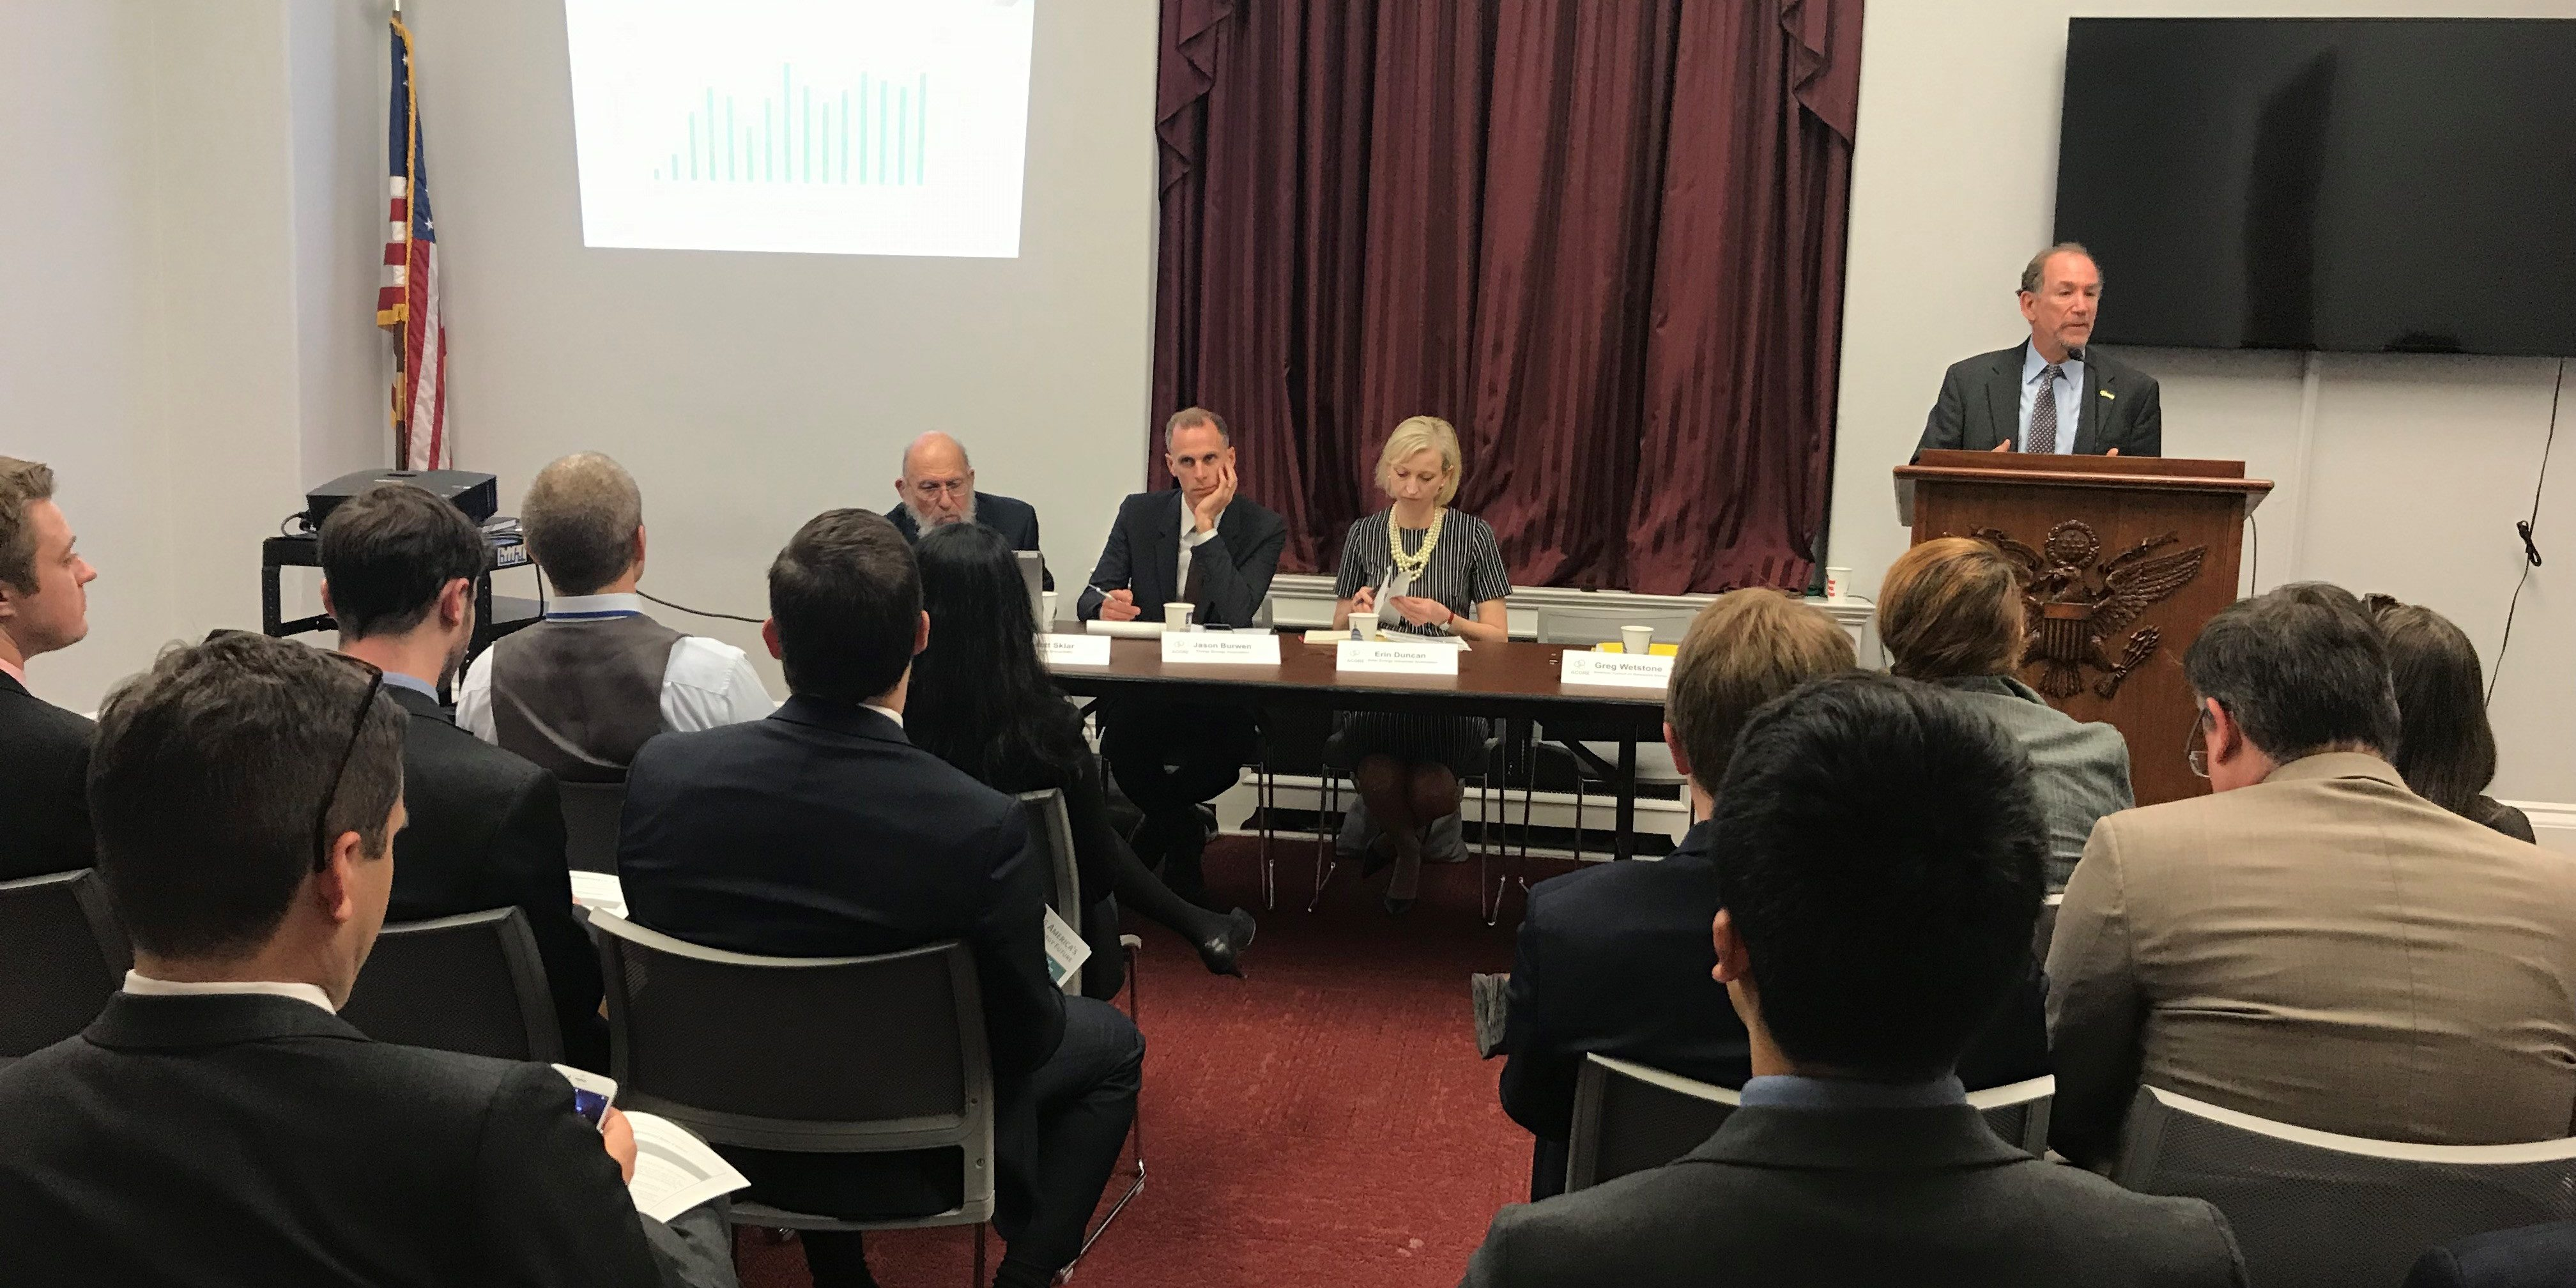 Energy storage tax credit, transmission spotlighted as bipartisan opportunities at ACORE's Hill briefing